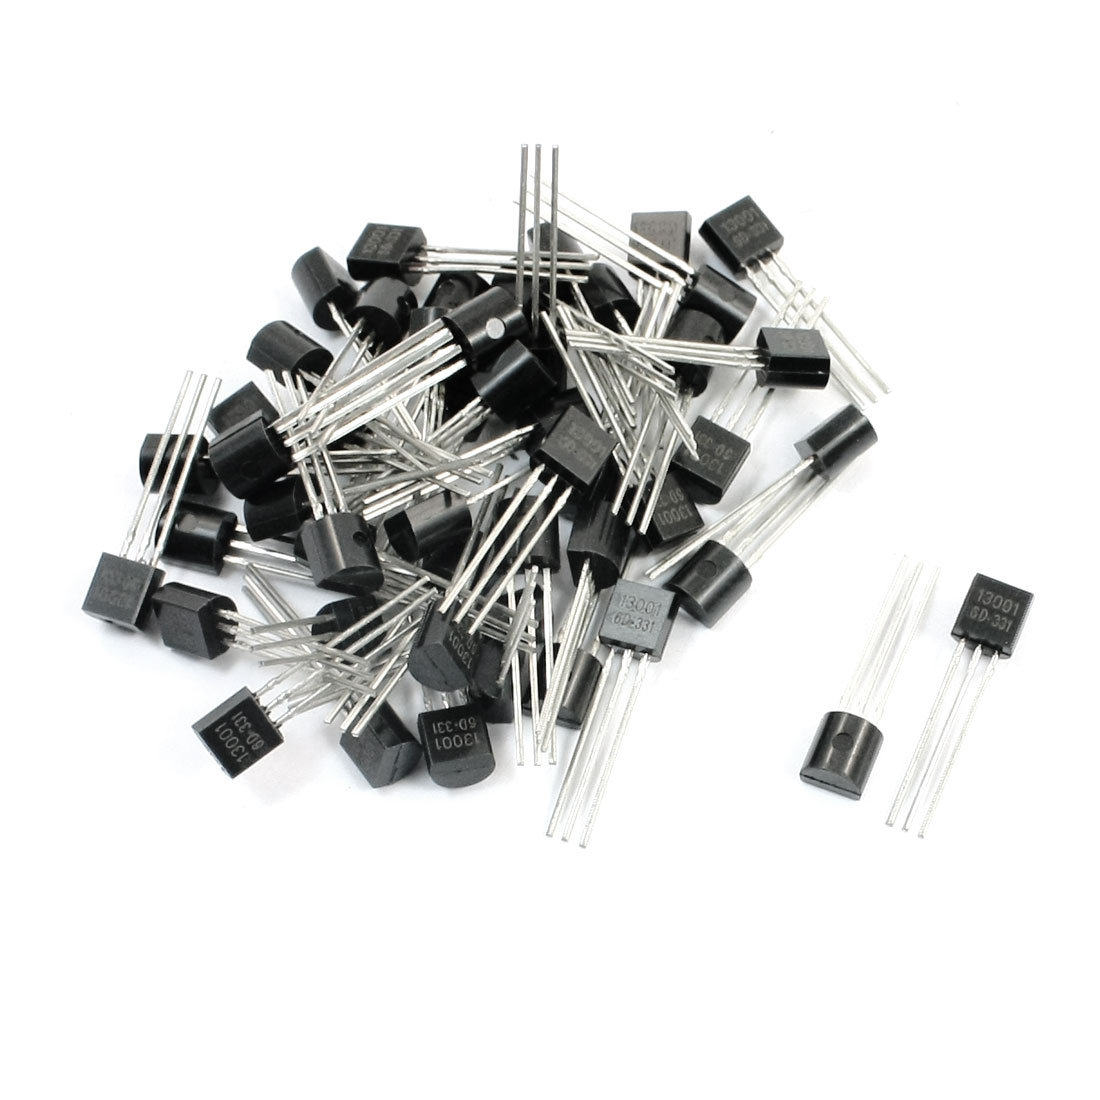 50pcs General Propose 13001 600V 0.2A TO-92 Package NPN Transistor